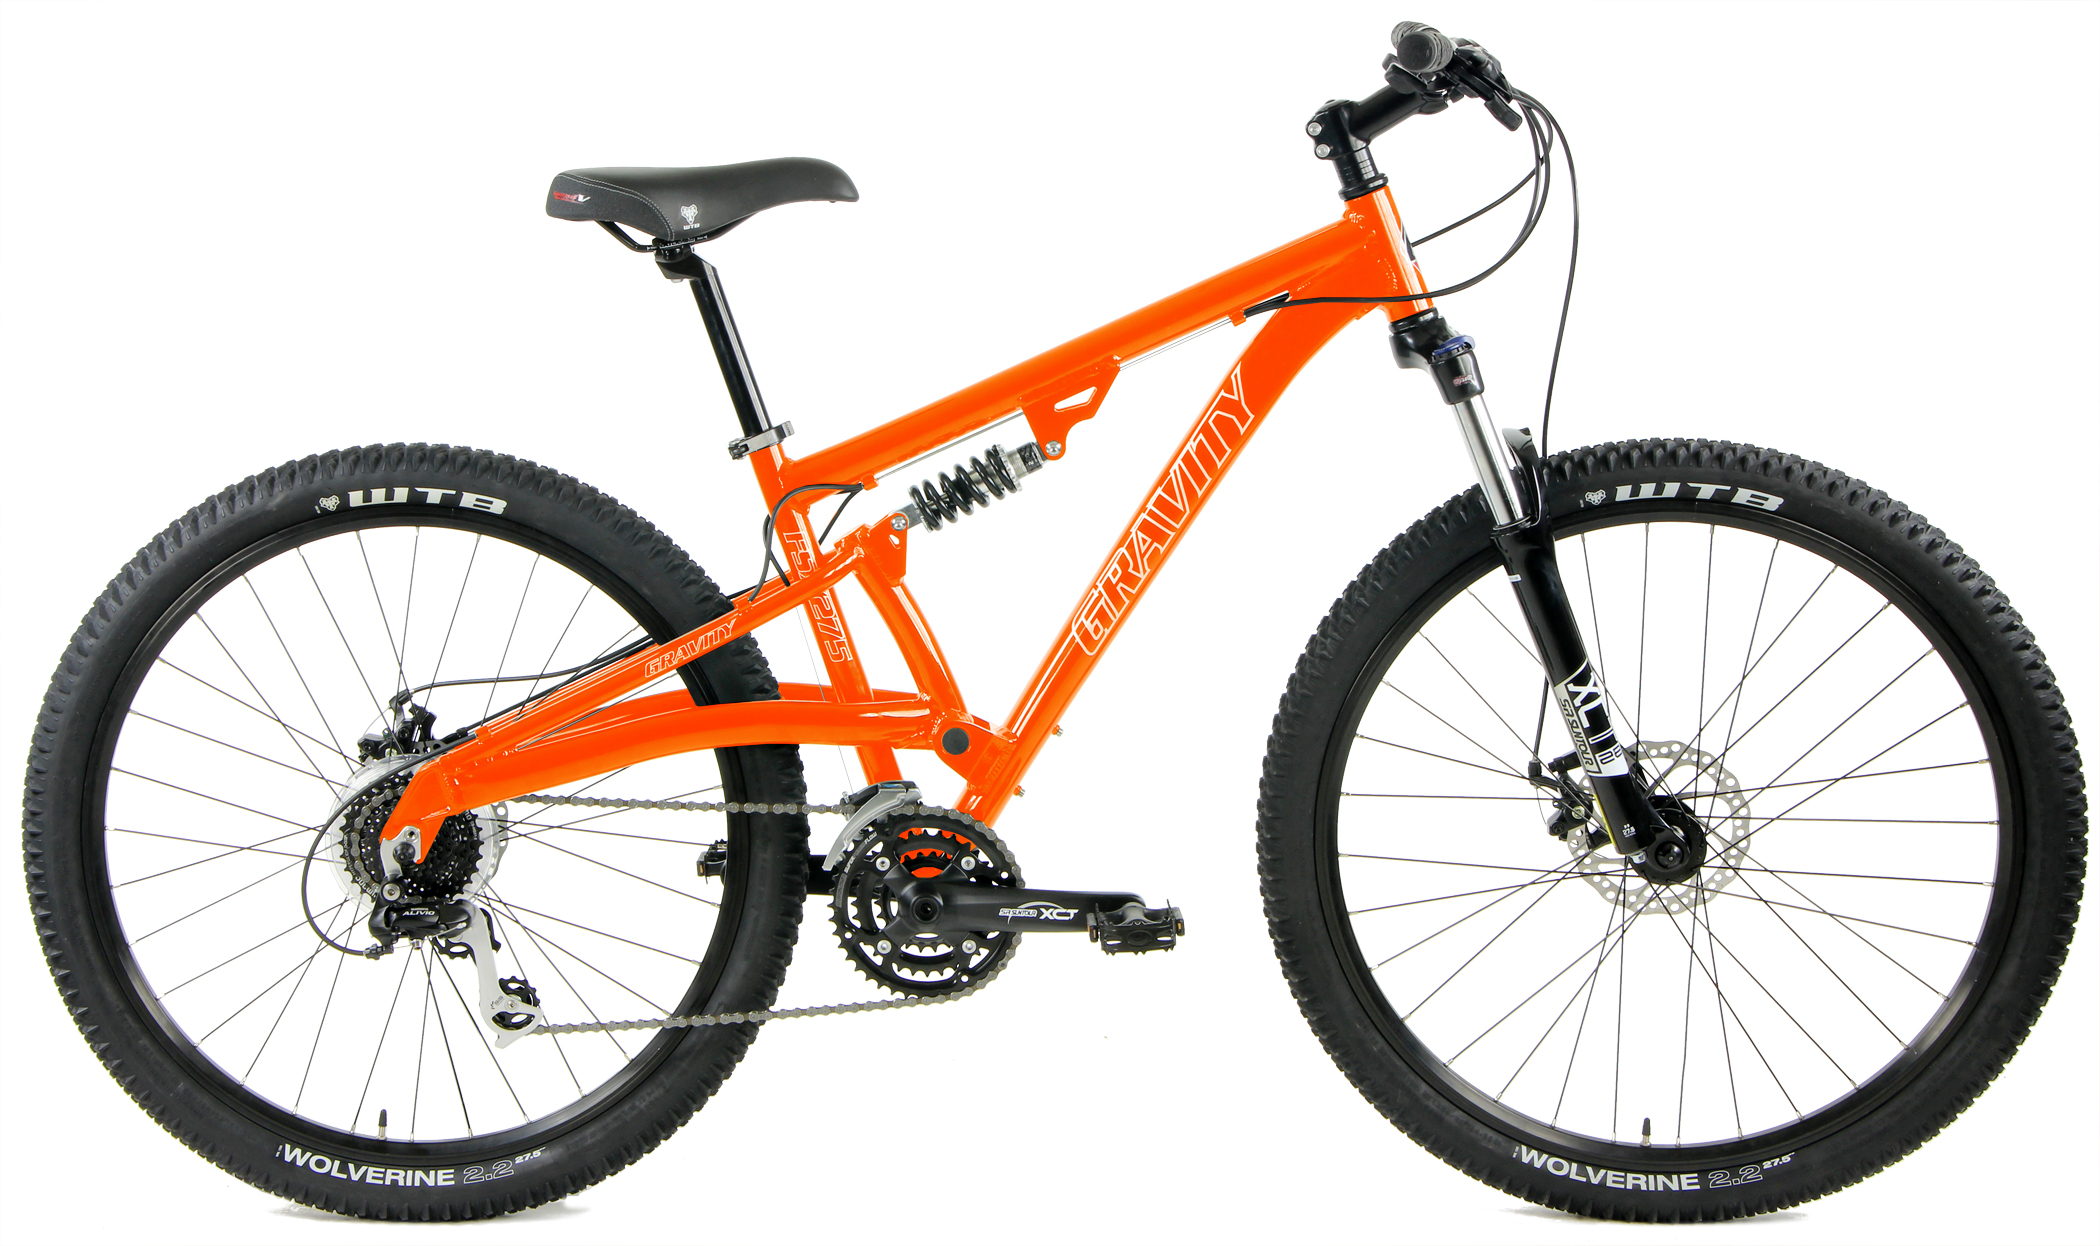 FSX 275 LTD - SHIMANO 24sp FULL SUSPENSION 27.5 w/ DISC